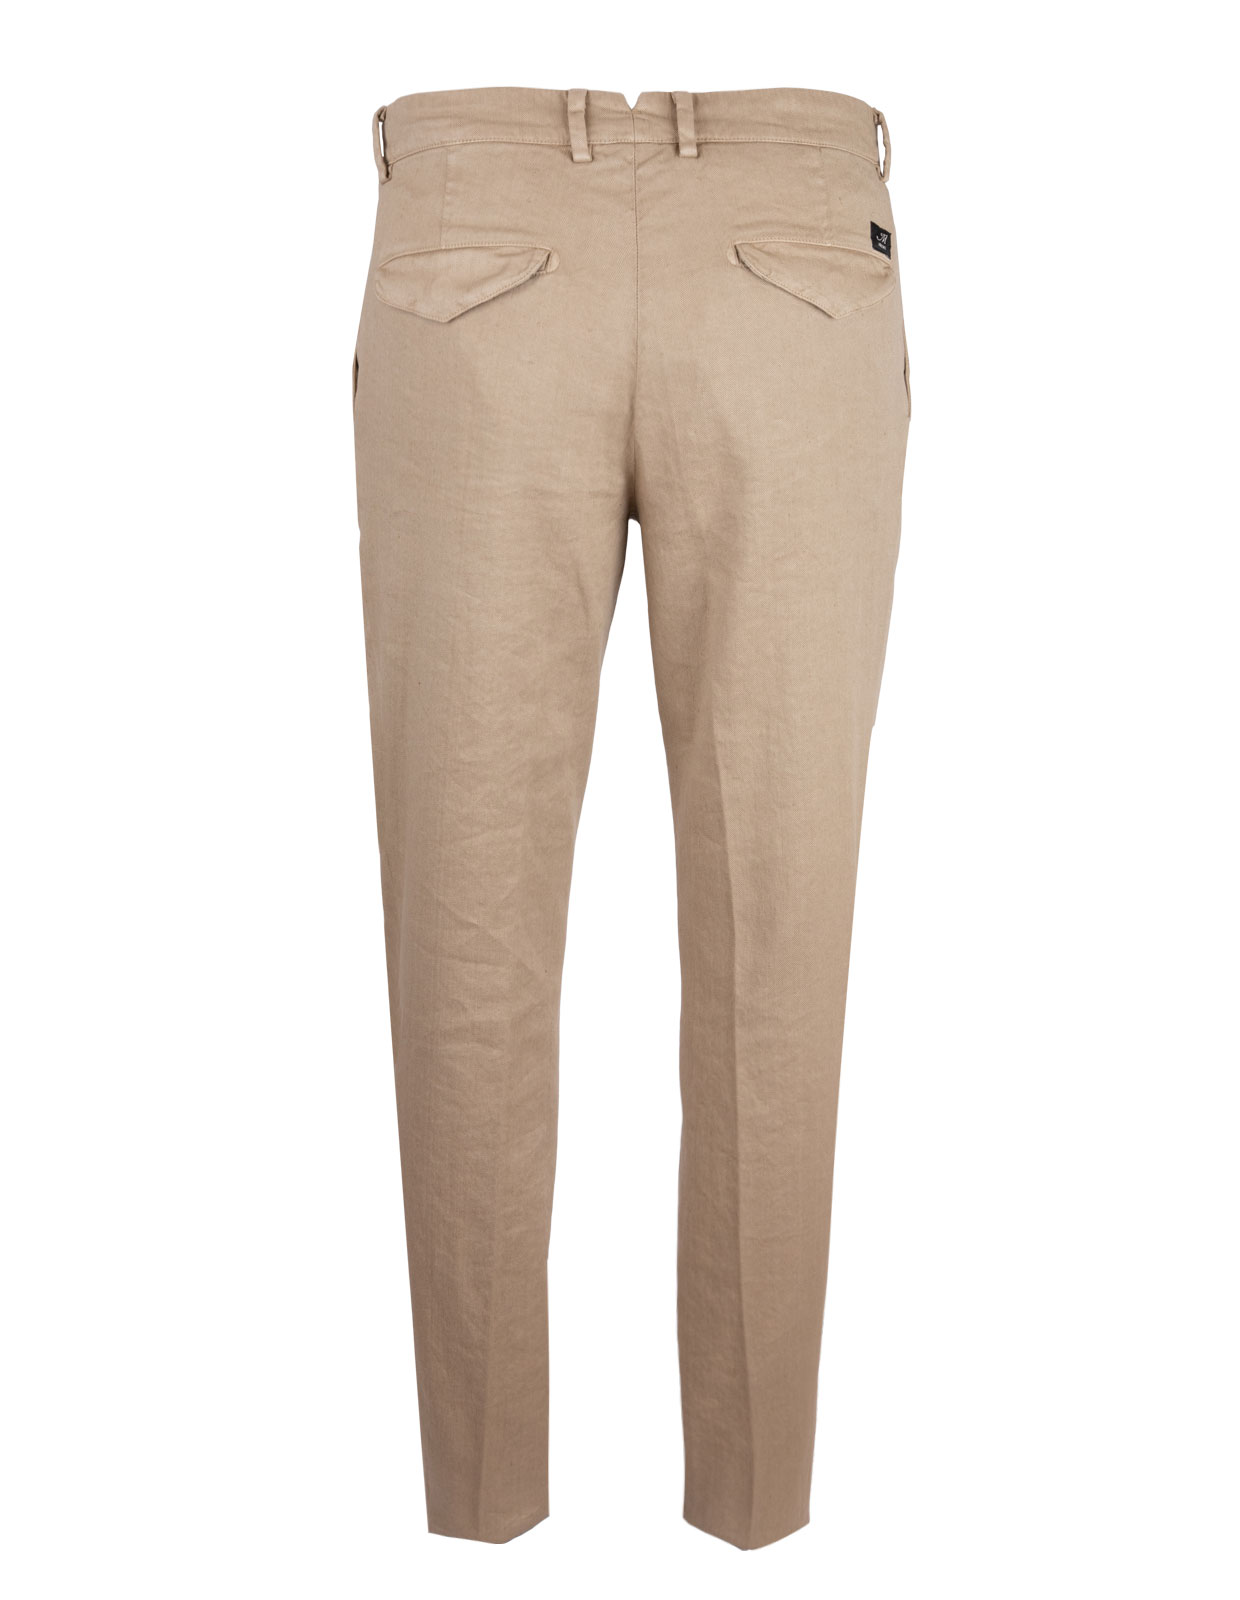 Amalfi Pleat Chinos Linen Cotton Stretch Beige